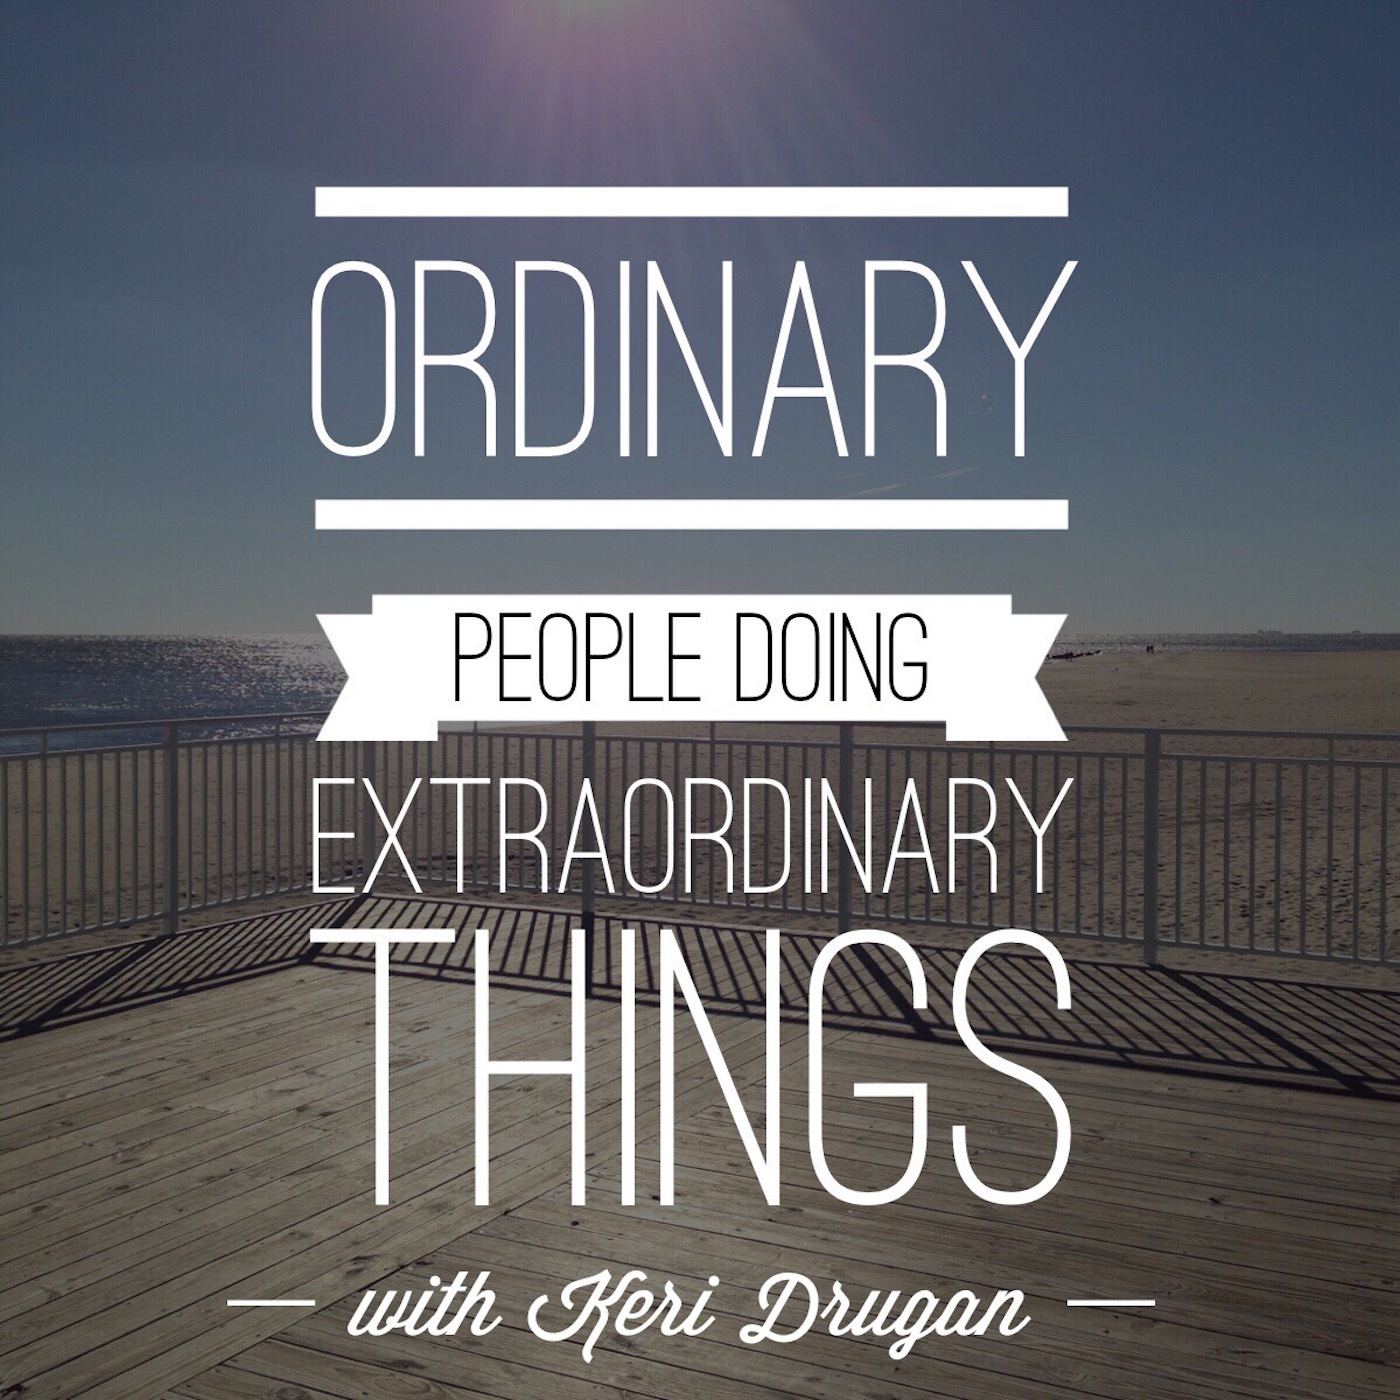 An extraordinary person is a person 52